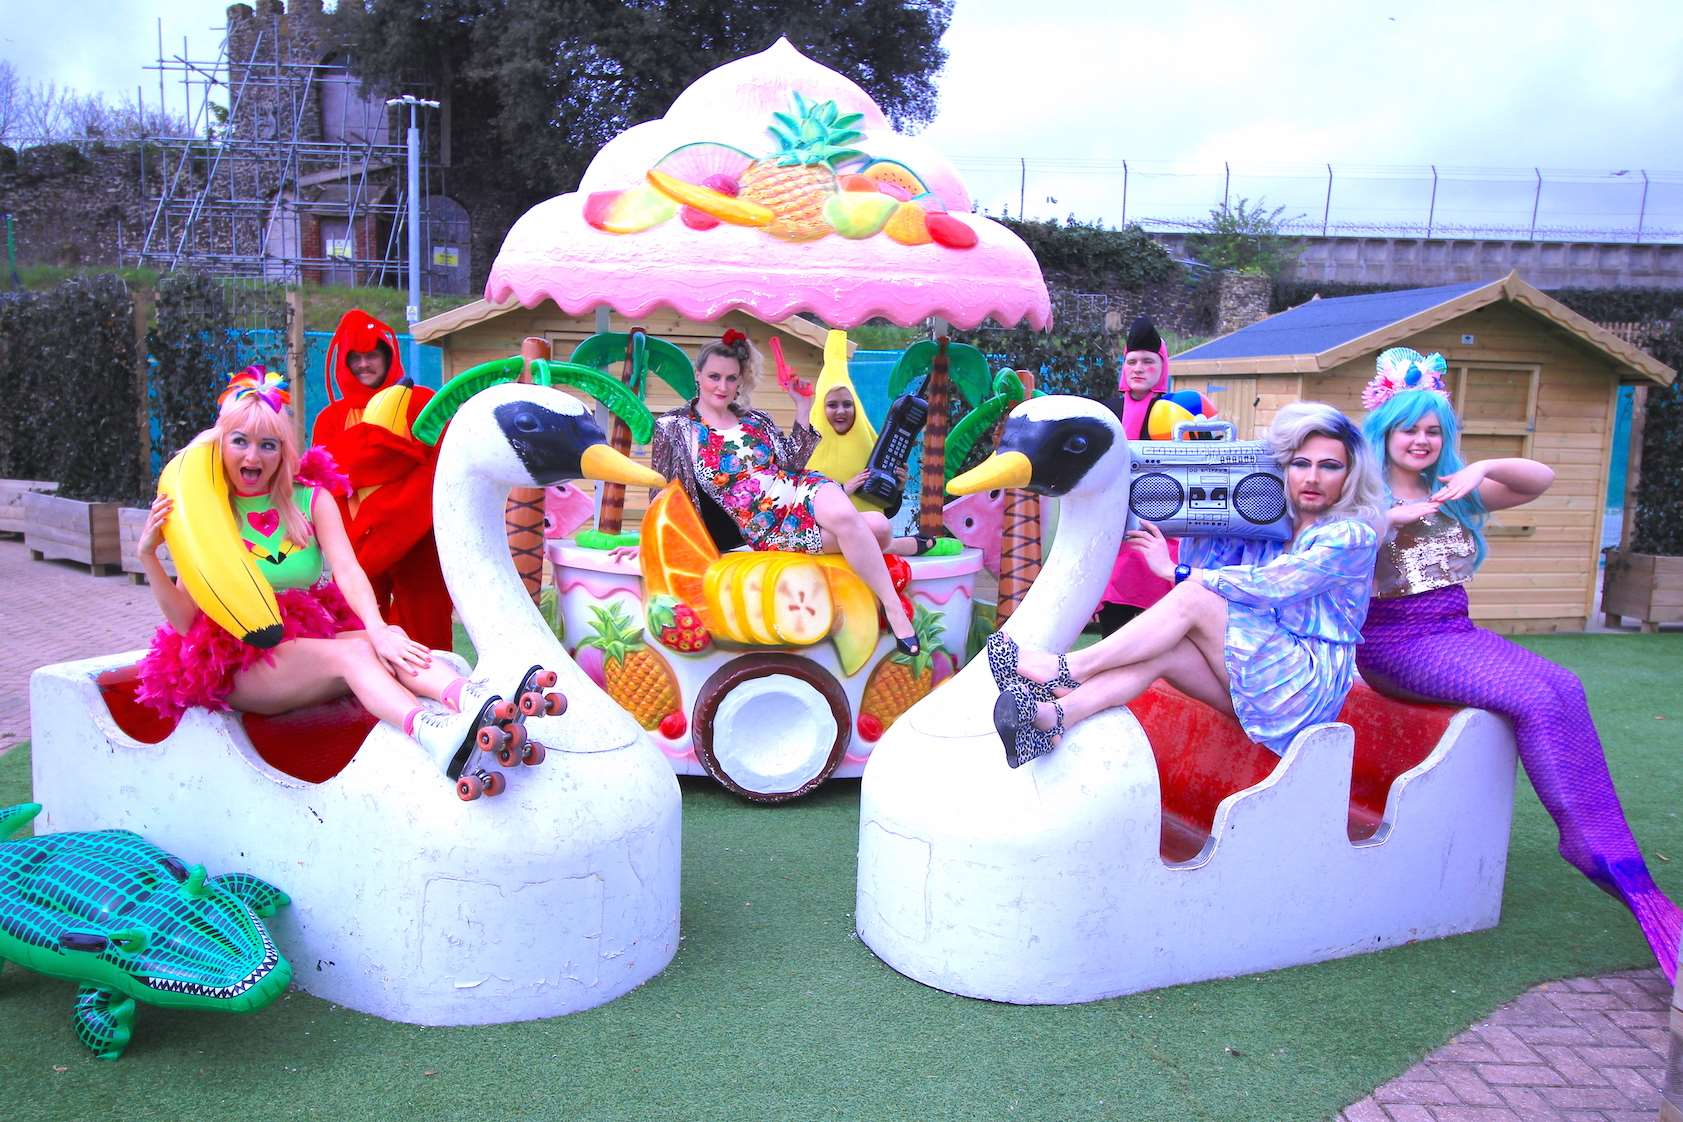 There is 80s, beach and tropical-themed fun at Dreamland